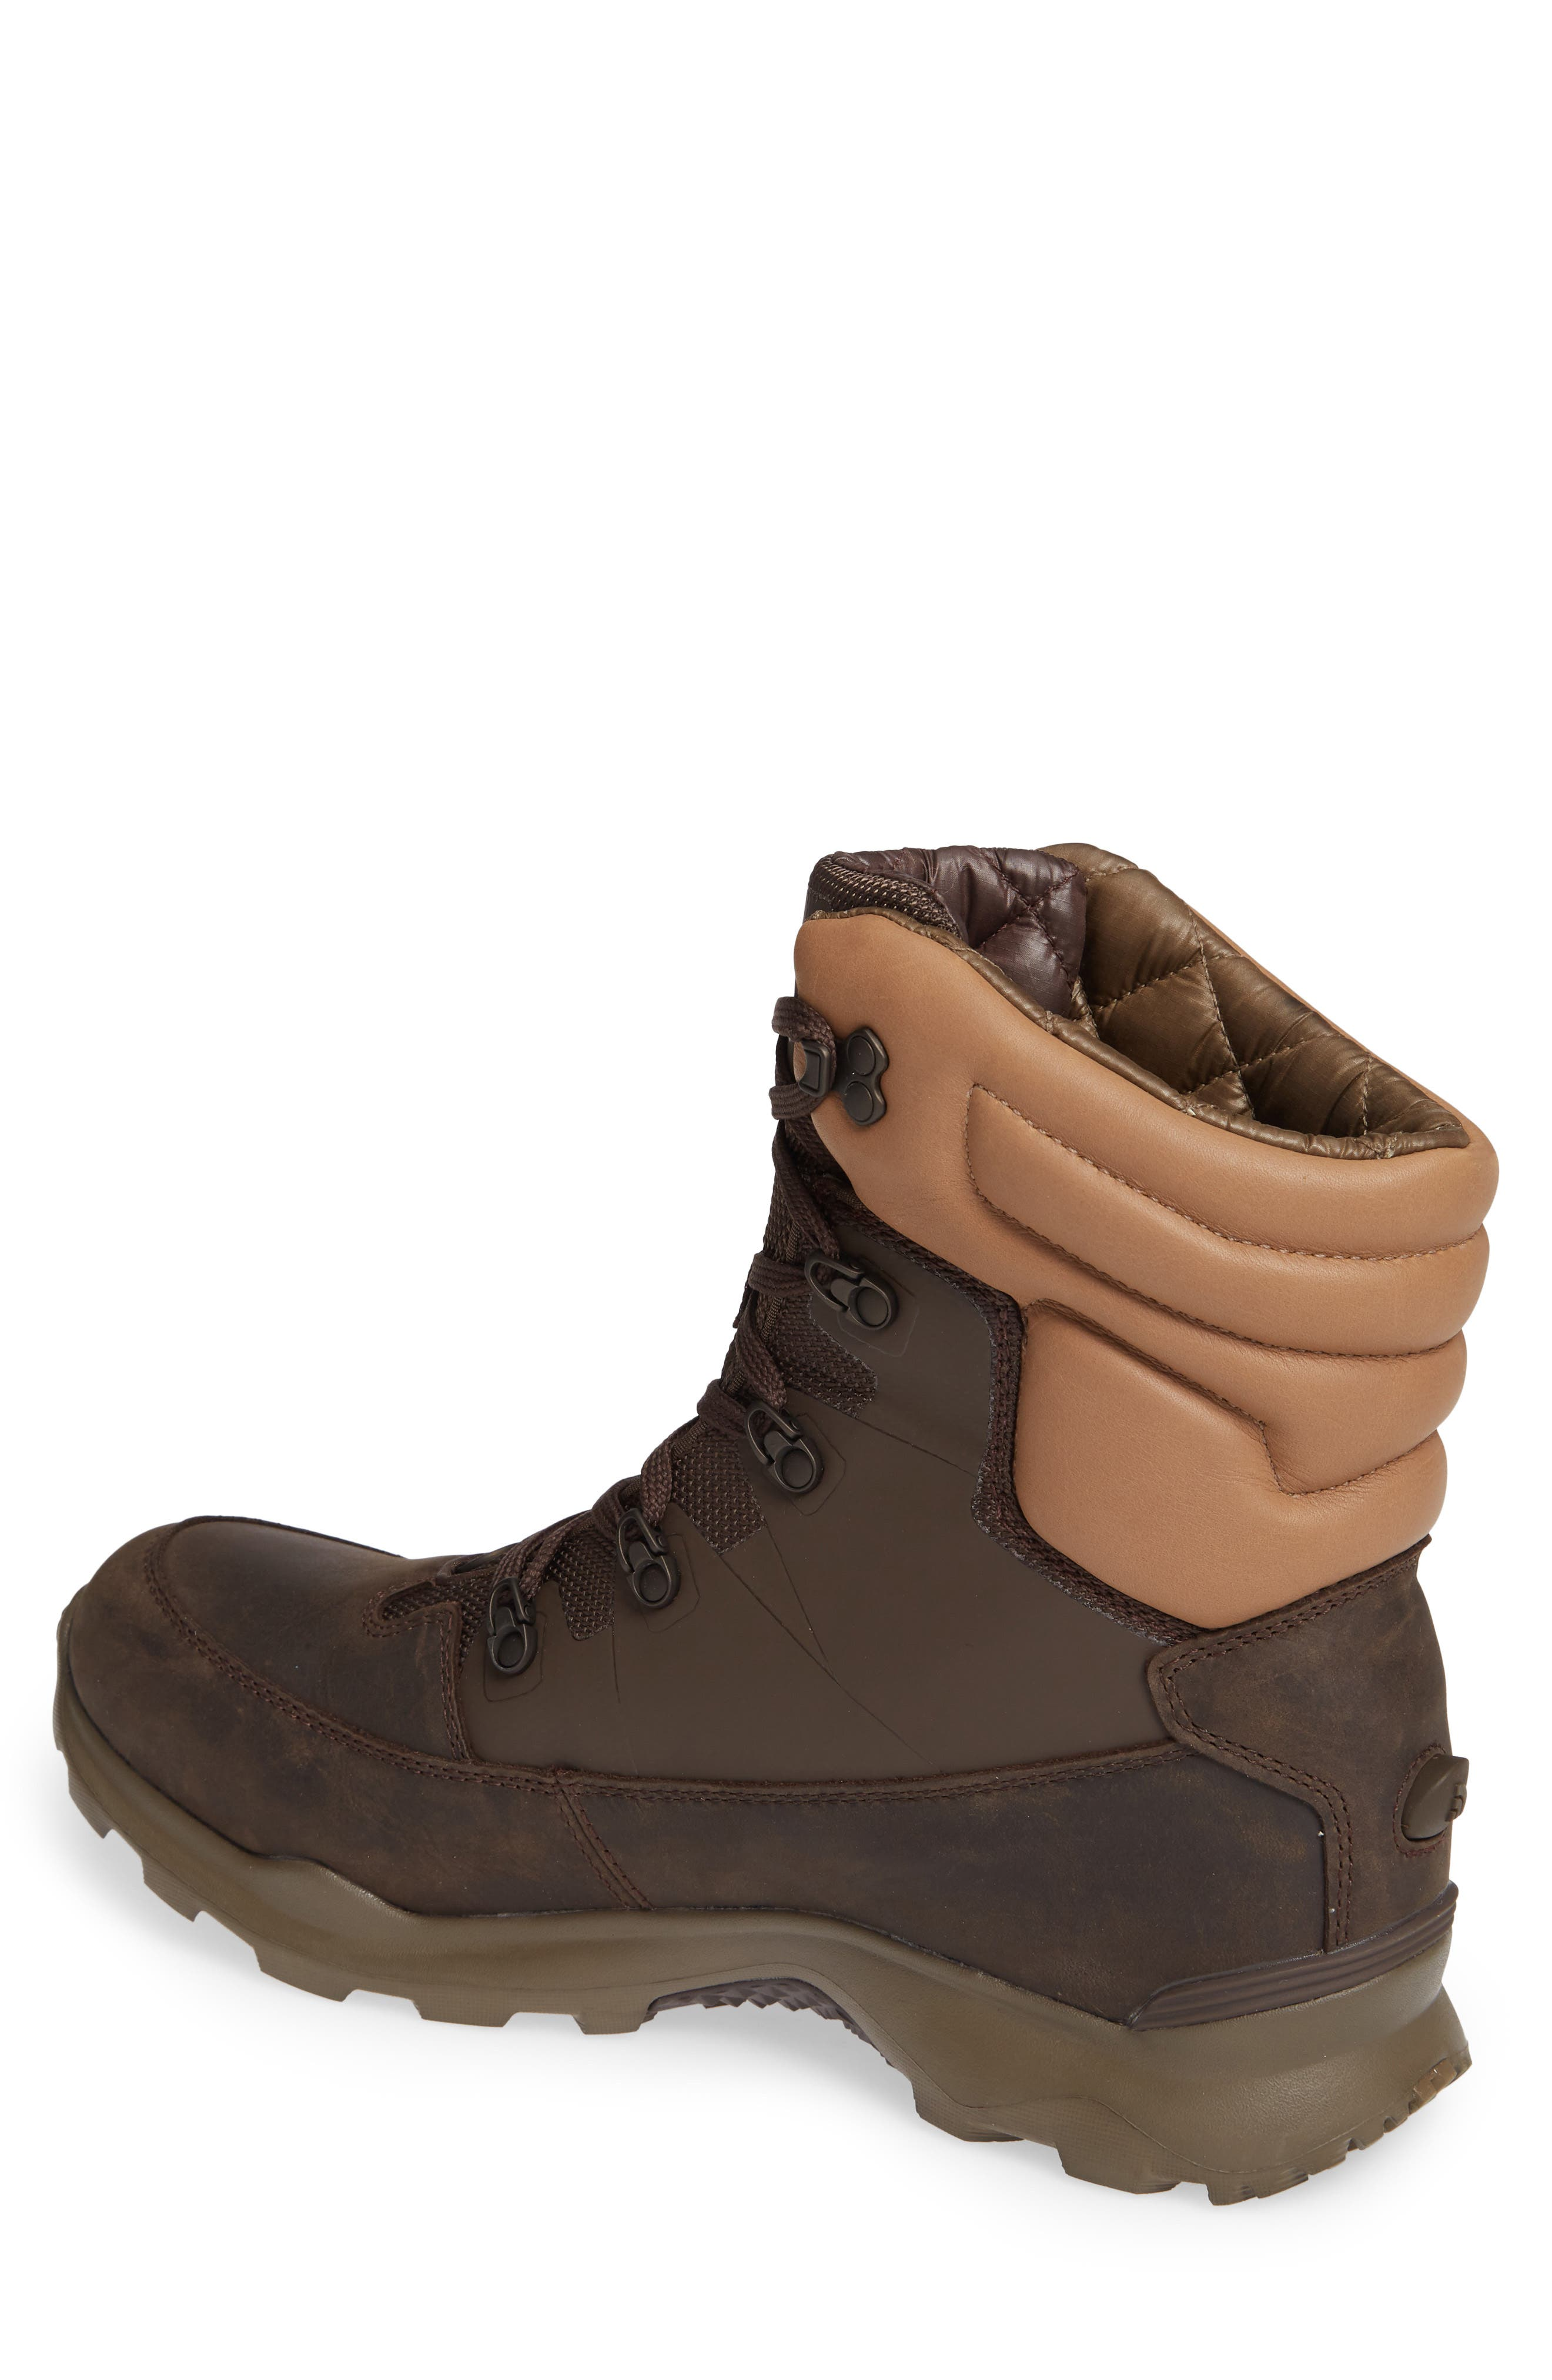 ThermoBall Lifty Snow Boot,                             Alternate thumbnail 2, color,                             CHOCOLATE BROWN/ CARGO KHAKI